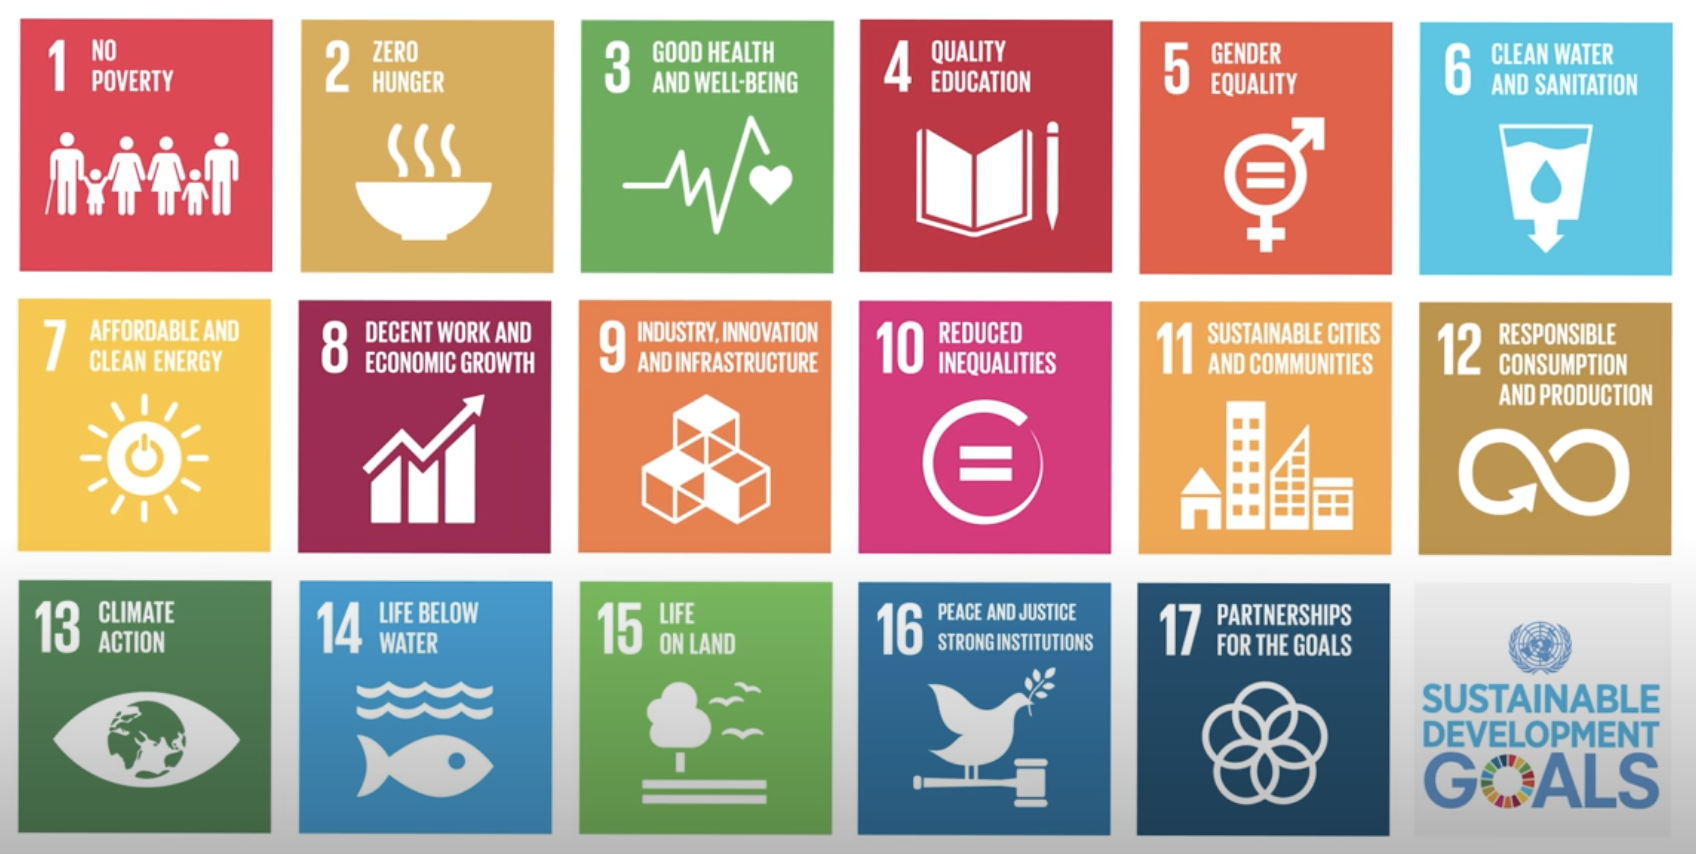 Understanding the Dimensions of Sustainable Development